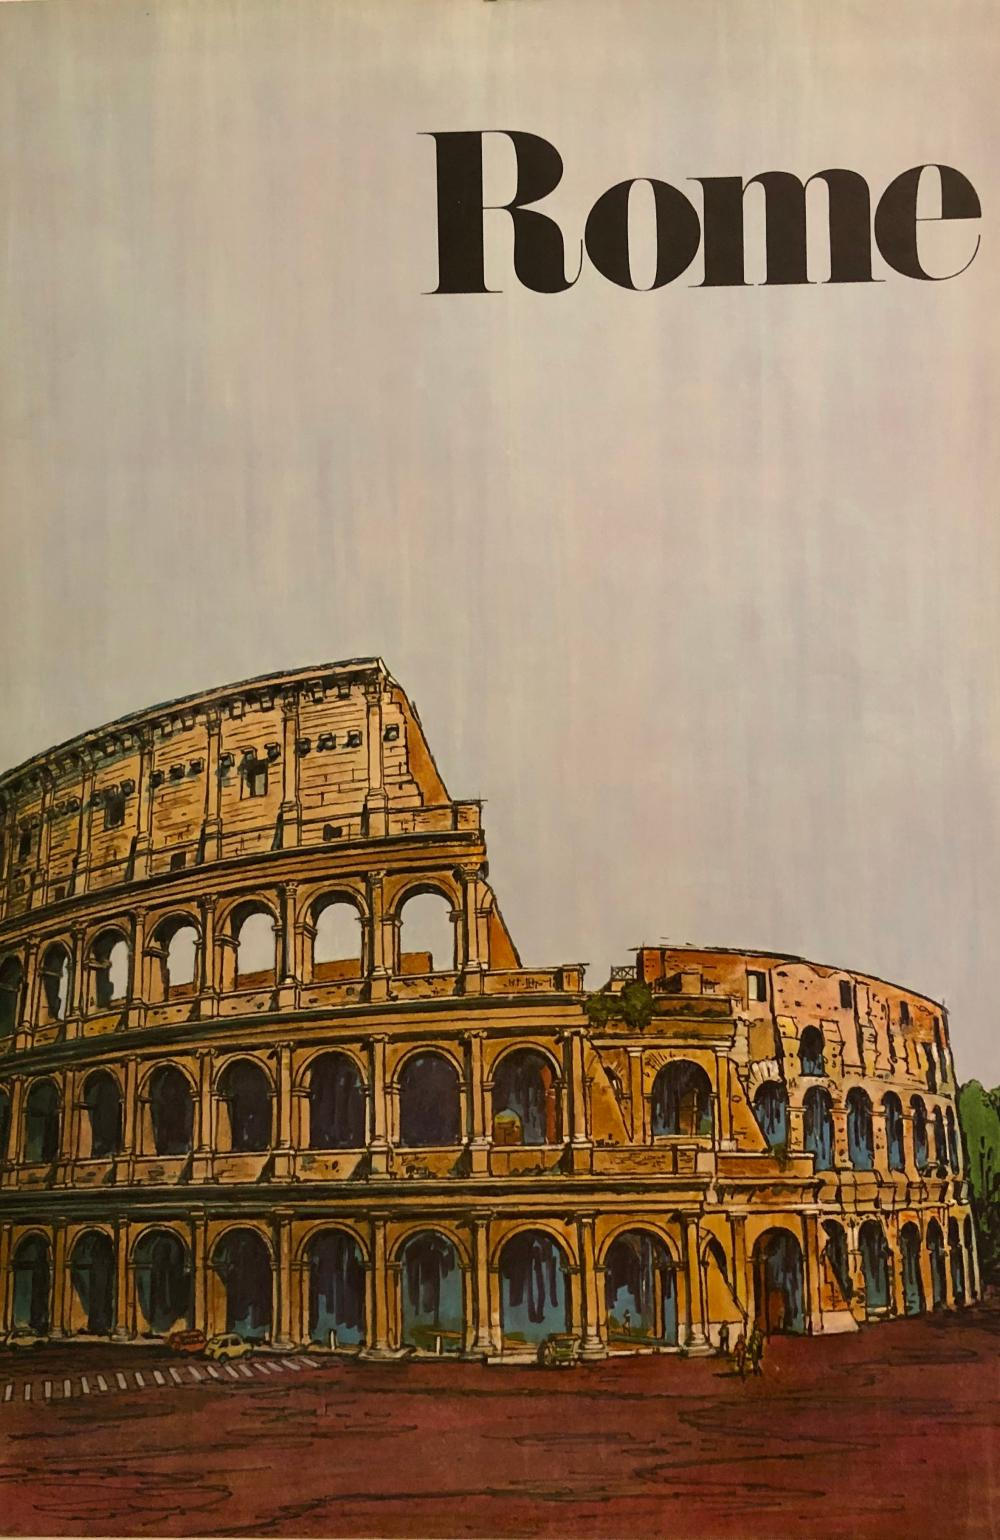 Ronzoni Rome Poster by Harry Kane Illustrator